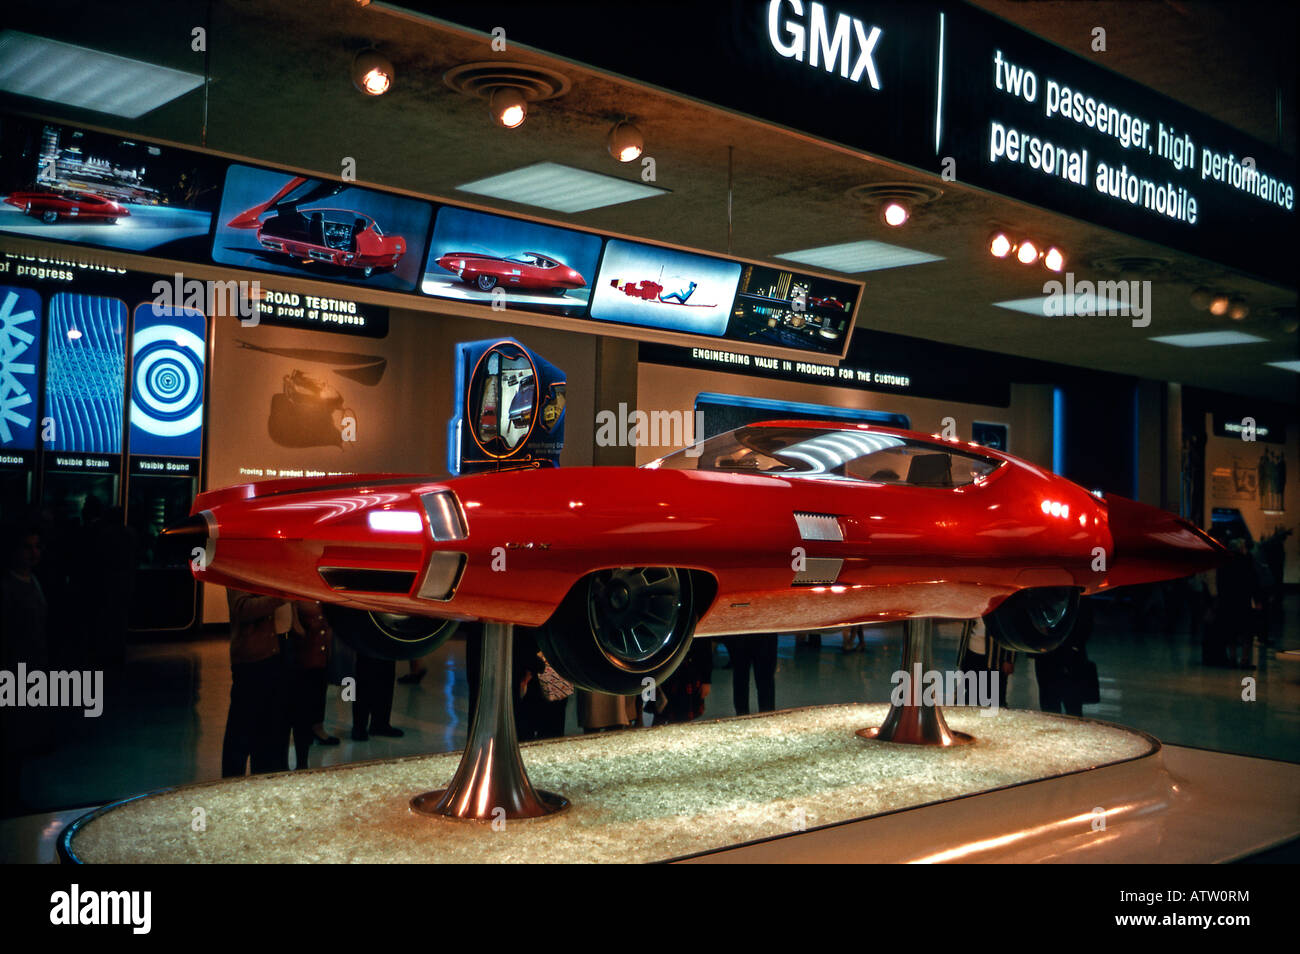 General Motors GM-X Stiletto concept car, alla fiera mondiale di New York 1964-5 Immagini Stock